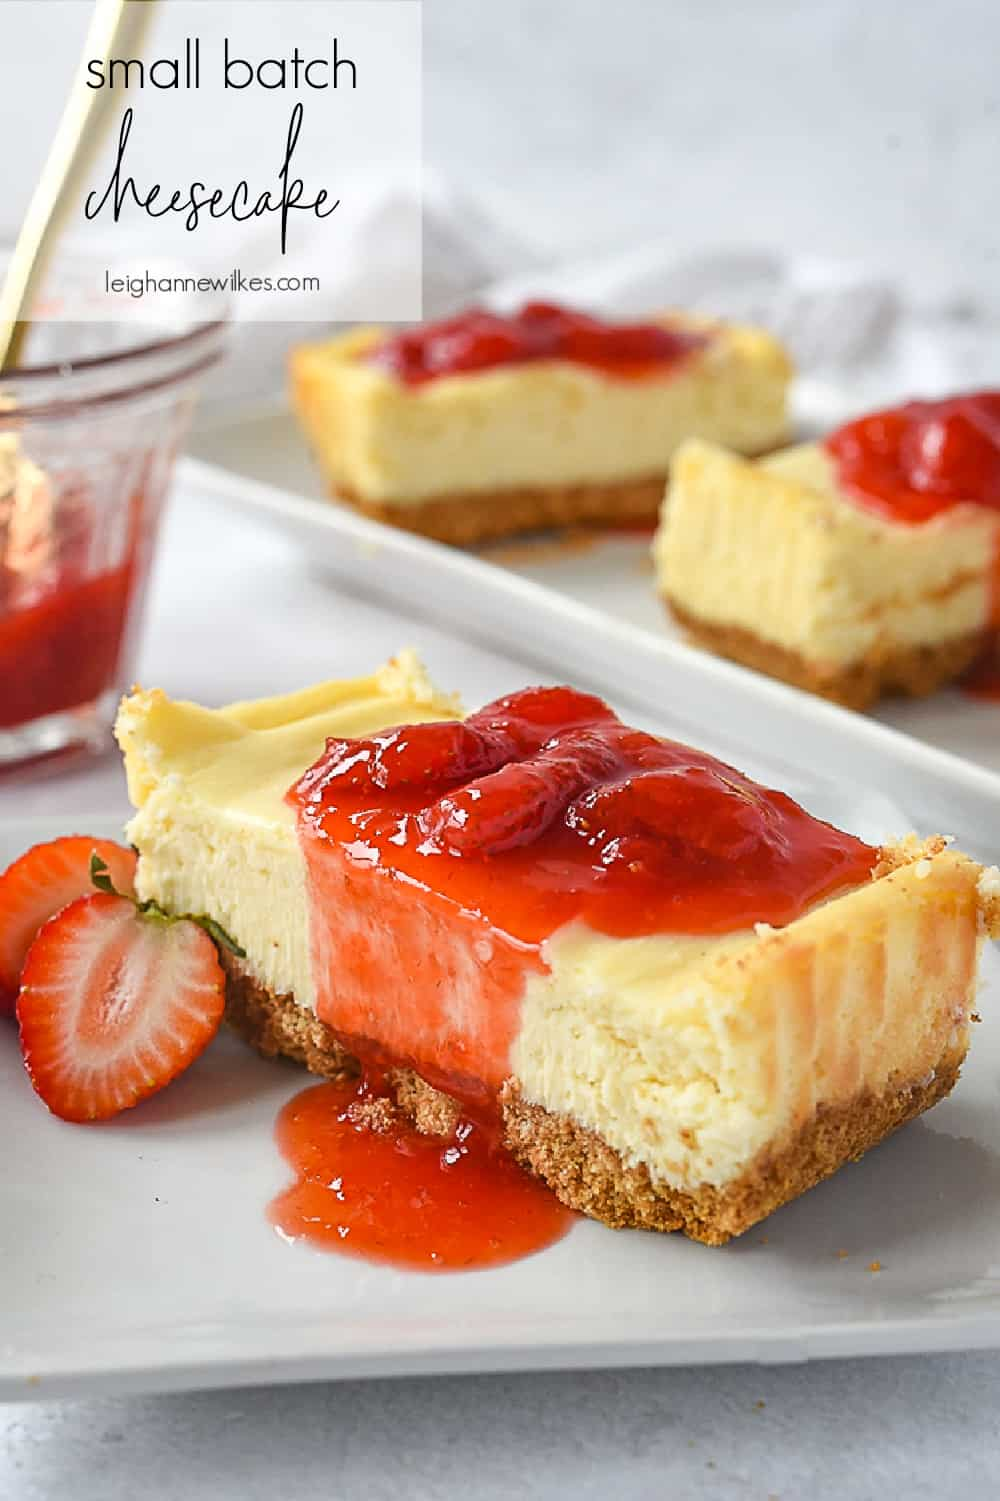 slice of small batch cheesecake with strawberry syrup on top